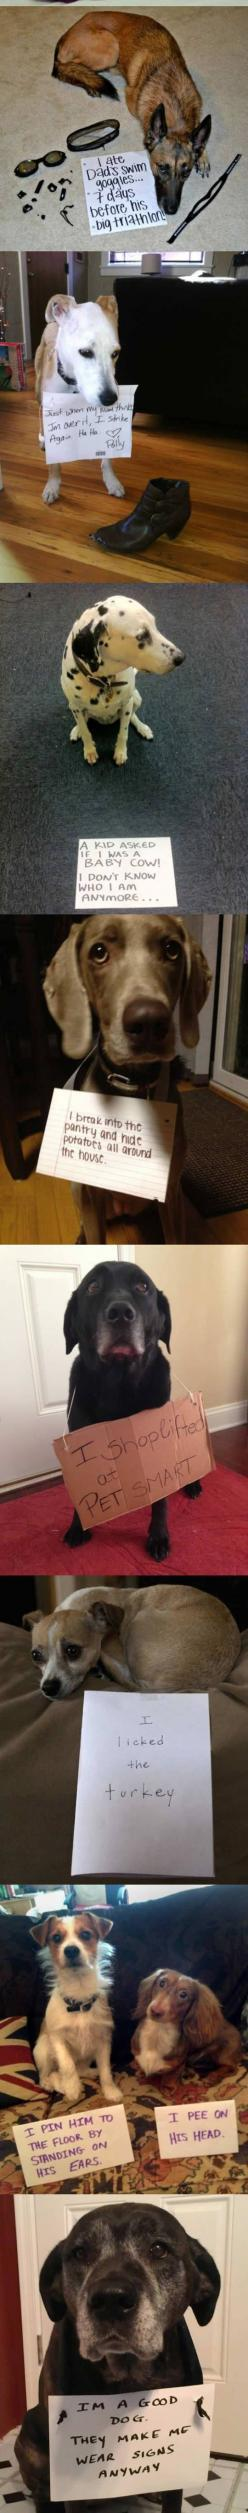 LMFAO! And just one more reason to have doubles of EVERYTHING when it comes to tri gear!: Funny Animals, Cows Funny, Pet, Dogs Funny Shaming, Dog Shaming Funny, Baby Cows, Cute Funny Dogs, Funny Dog Shaming Signs, Dog Shame Signs